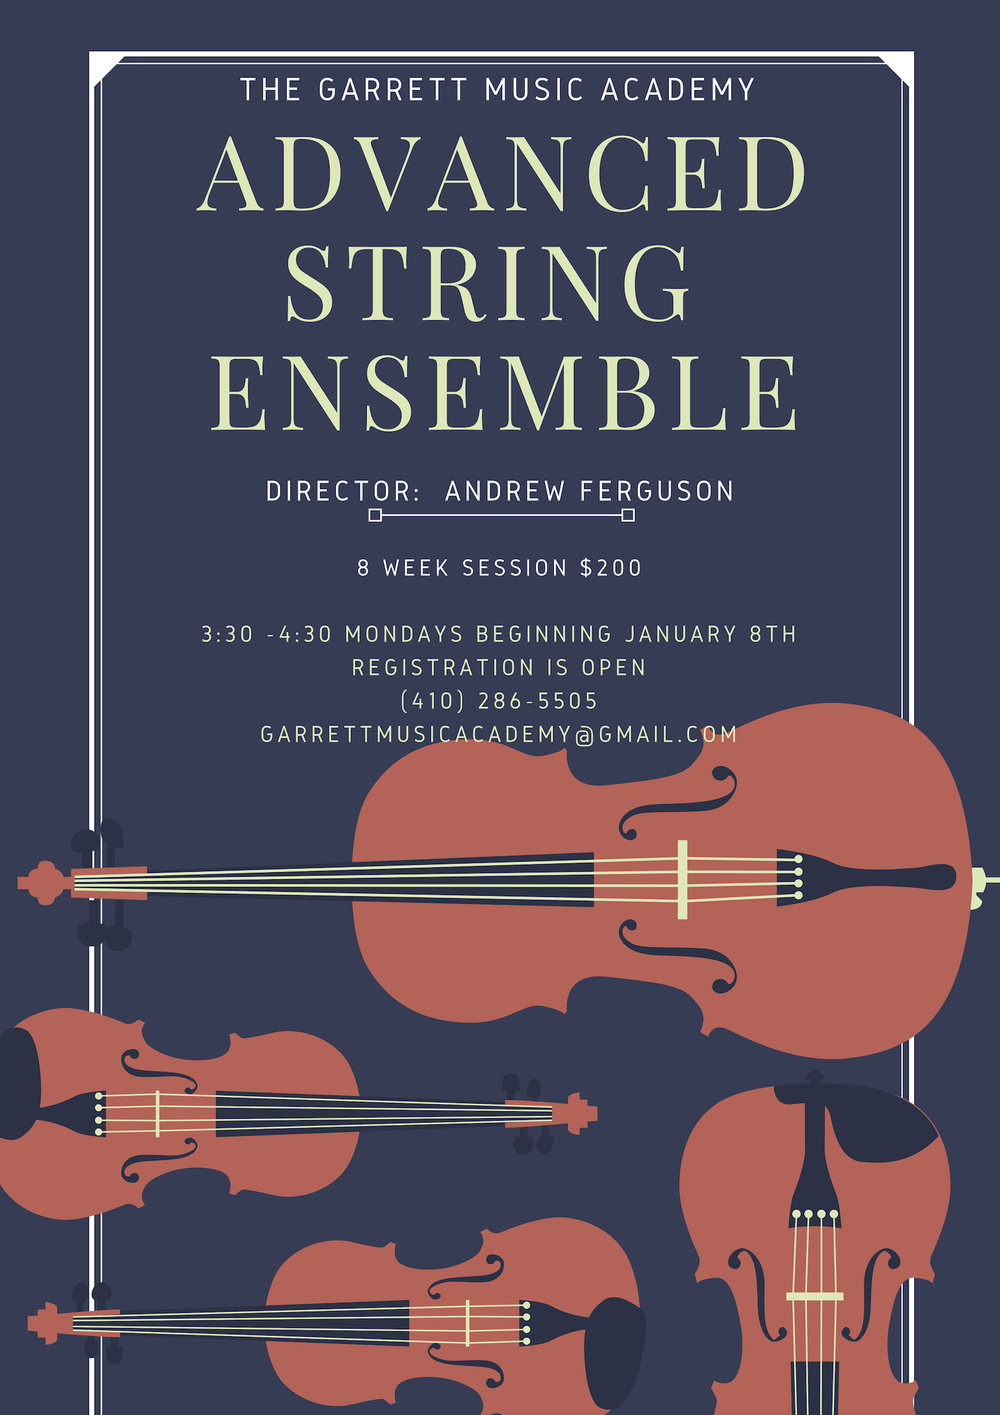 For our more advanced skills string students, accept the challenge... - REgistration is now open, the more the merrier...(410) 286-5505 or email garrettmusicacademy@gmail.com